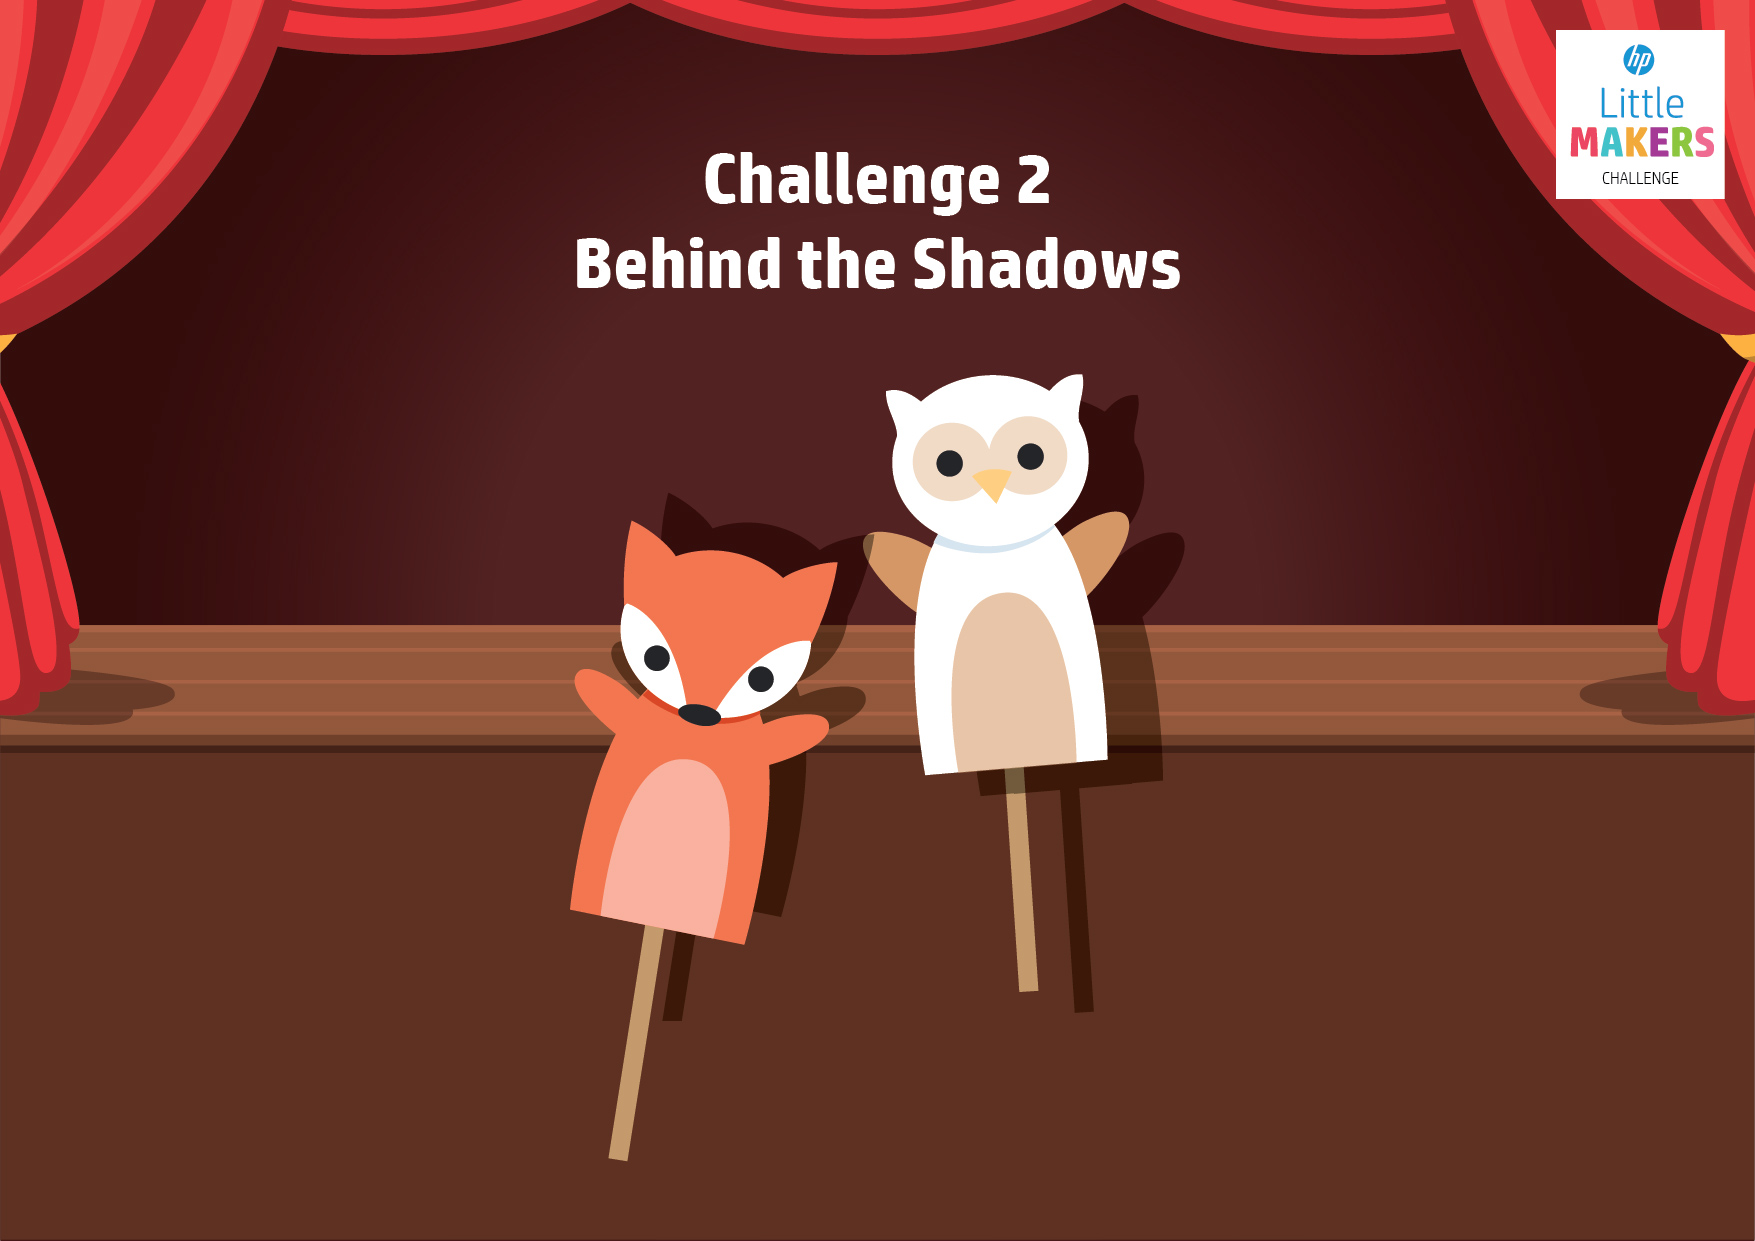 Challenge 2: Behind the Shadows